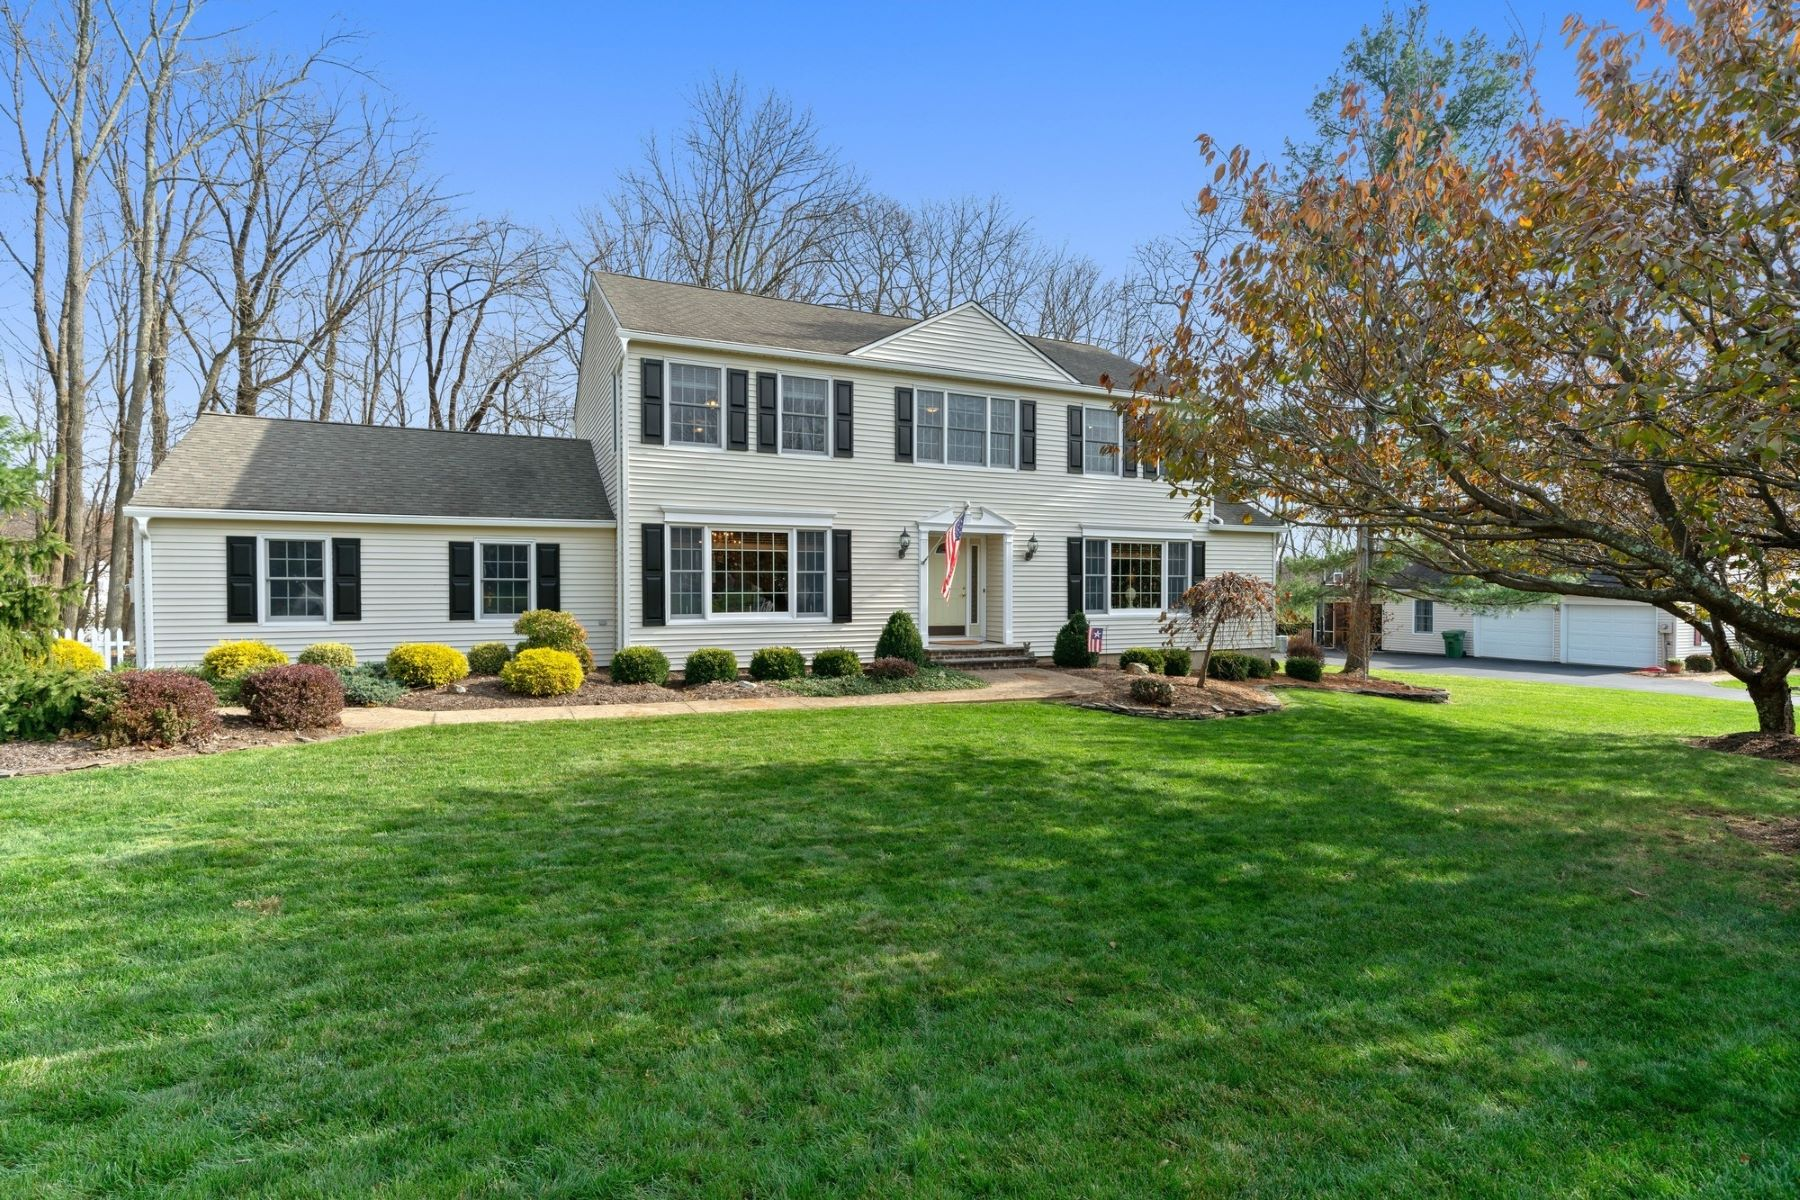 Single Family Homes for Sale at Stunning Colonial 17 Walnut Drive Washington Township, New Jersey 07853 United States